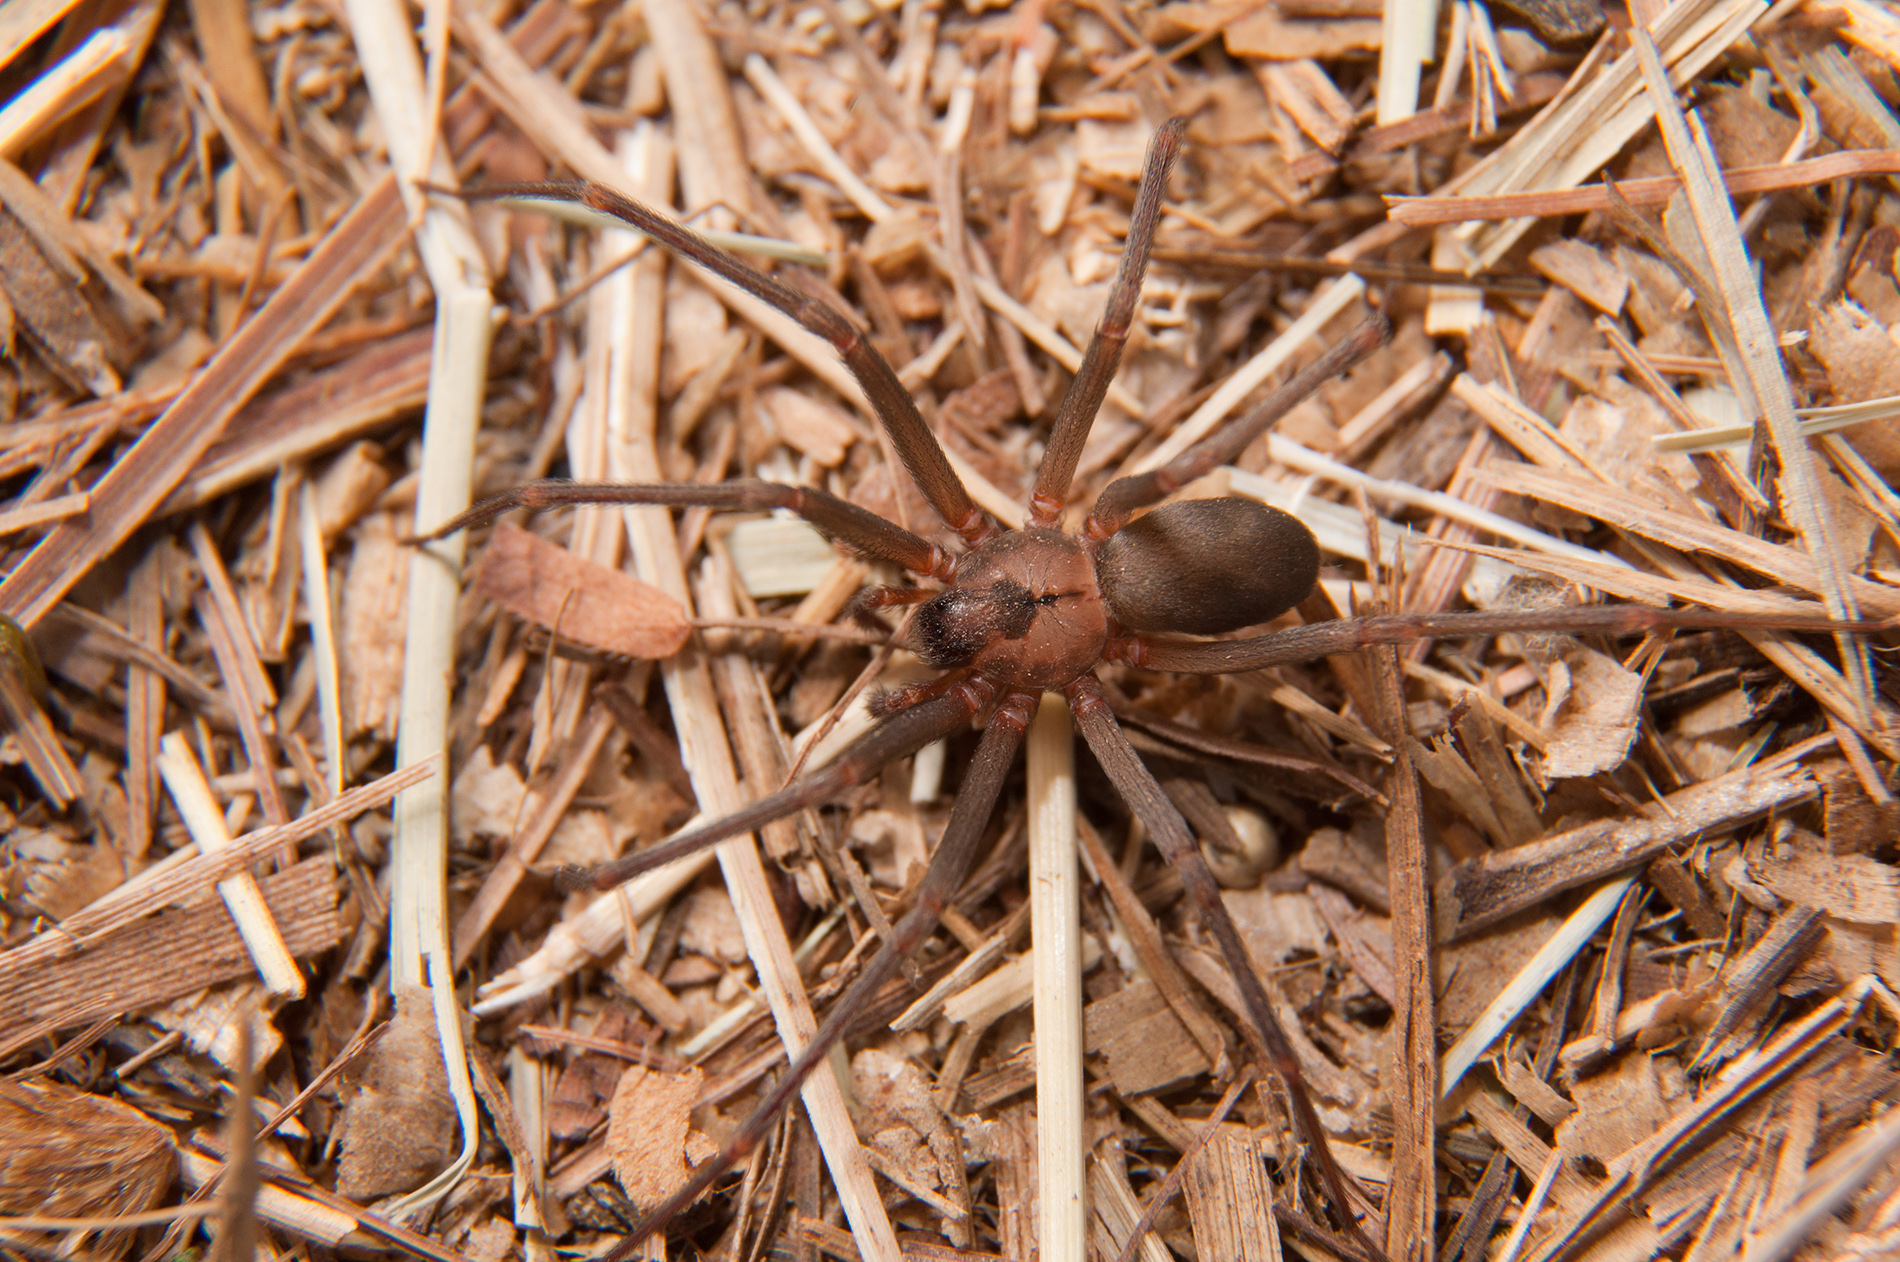 Brown recluse spider on pine straw